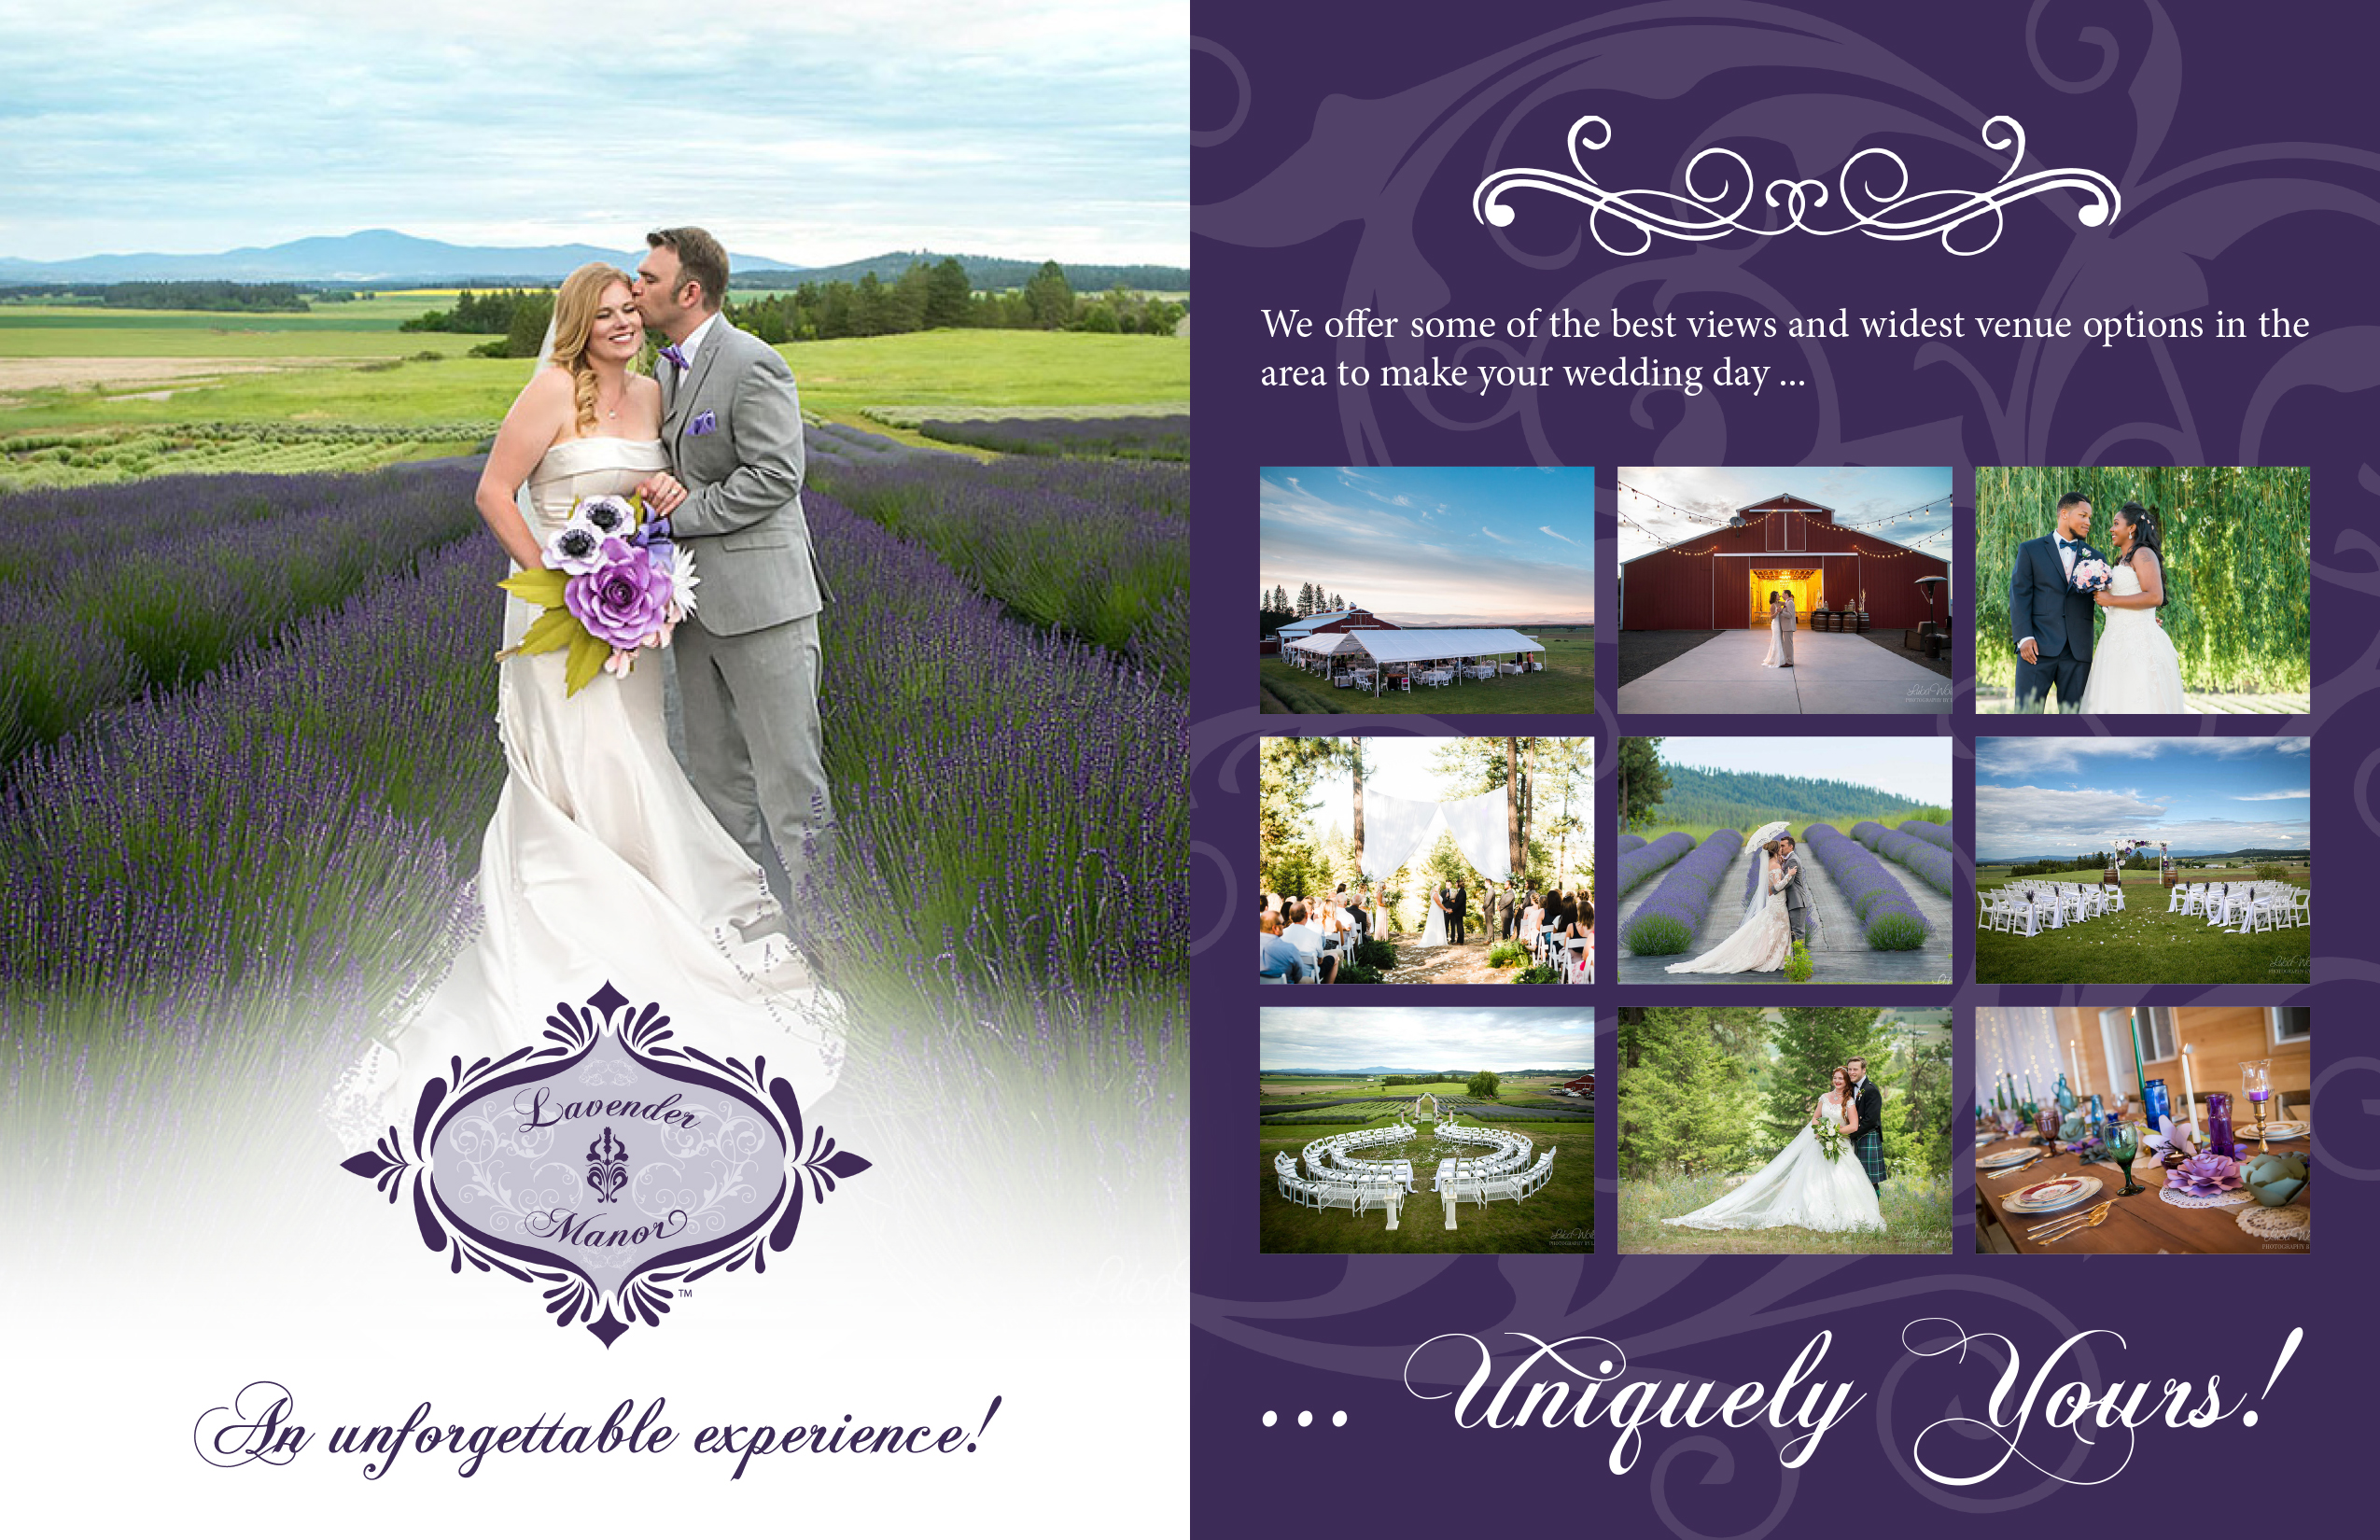 "<a href=""/vendors/wedding-lodging-facilities?id=""/>http://theweddingresourceguide.net/index.php?option=com_content&amp;view=article&amp;id=339</div></div></div></a>"